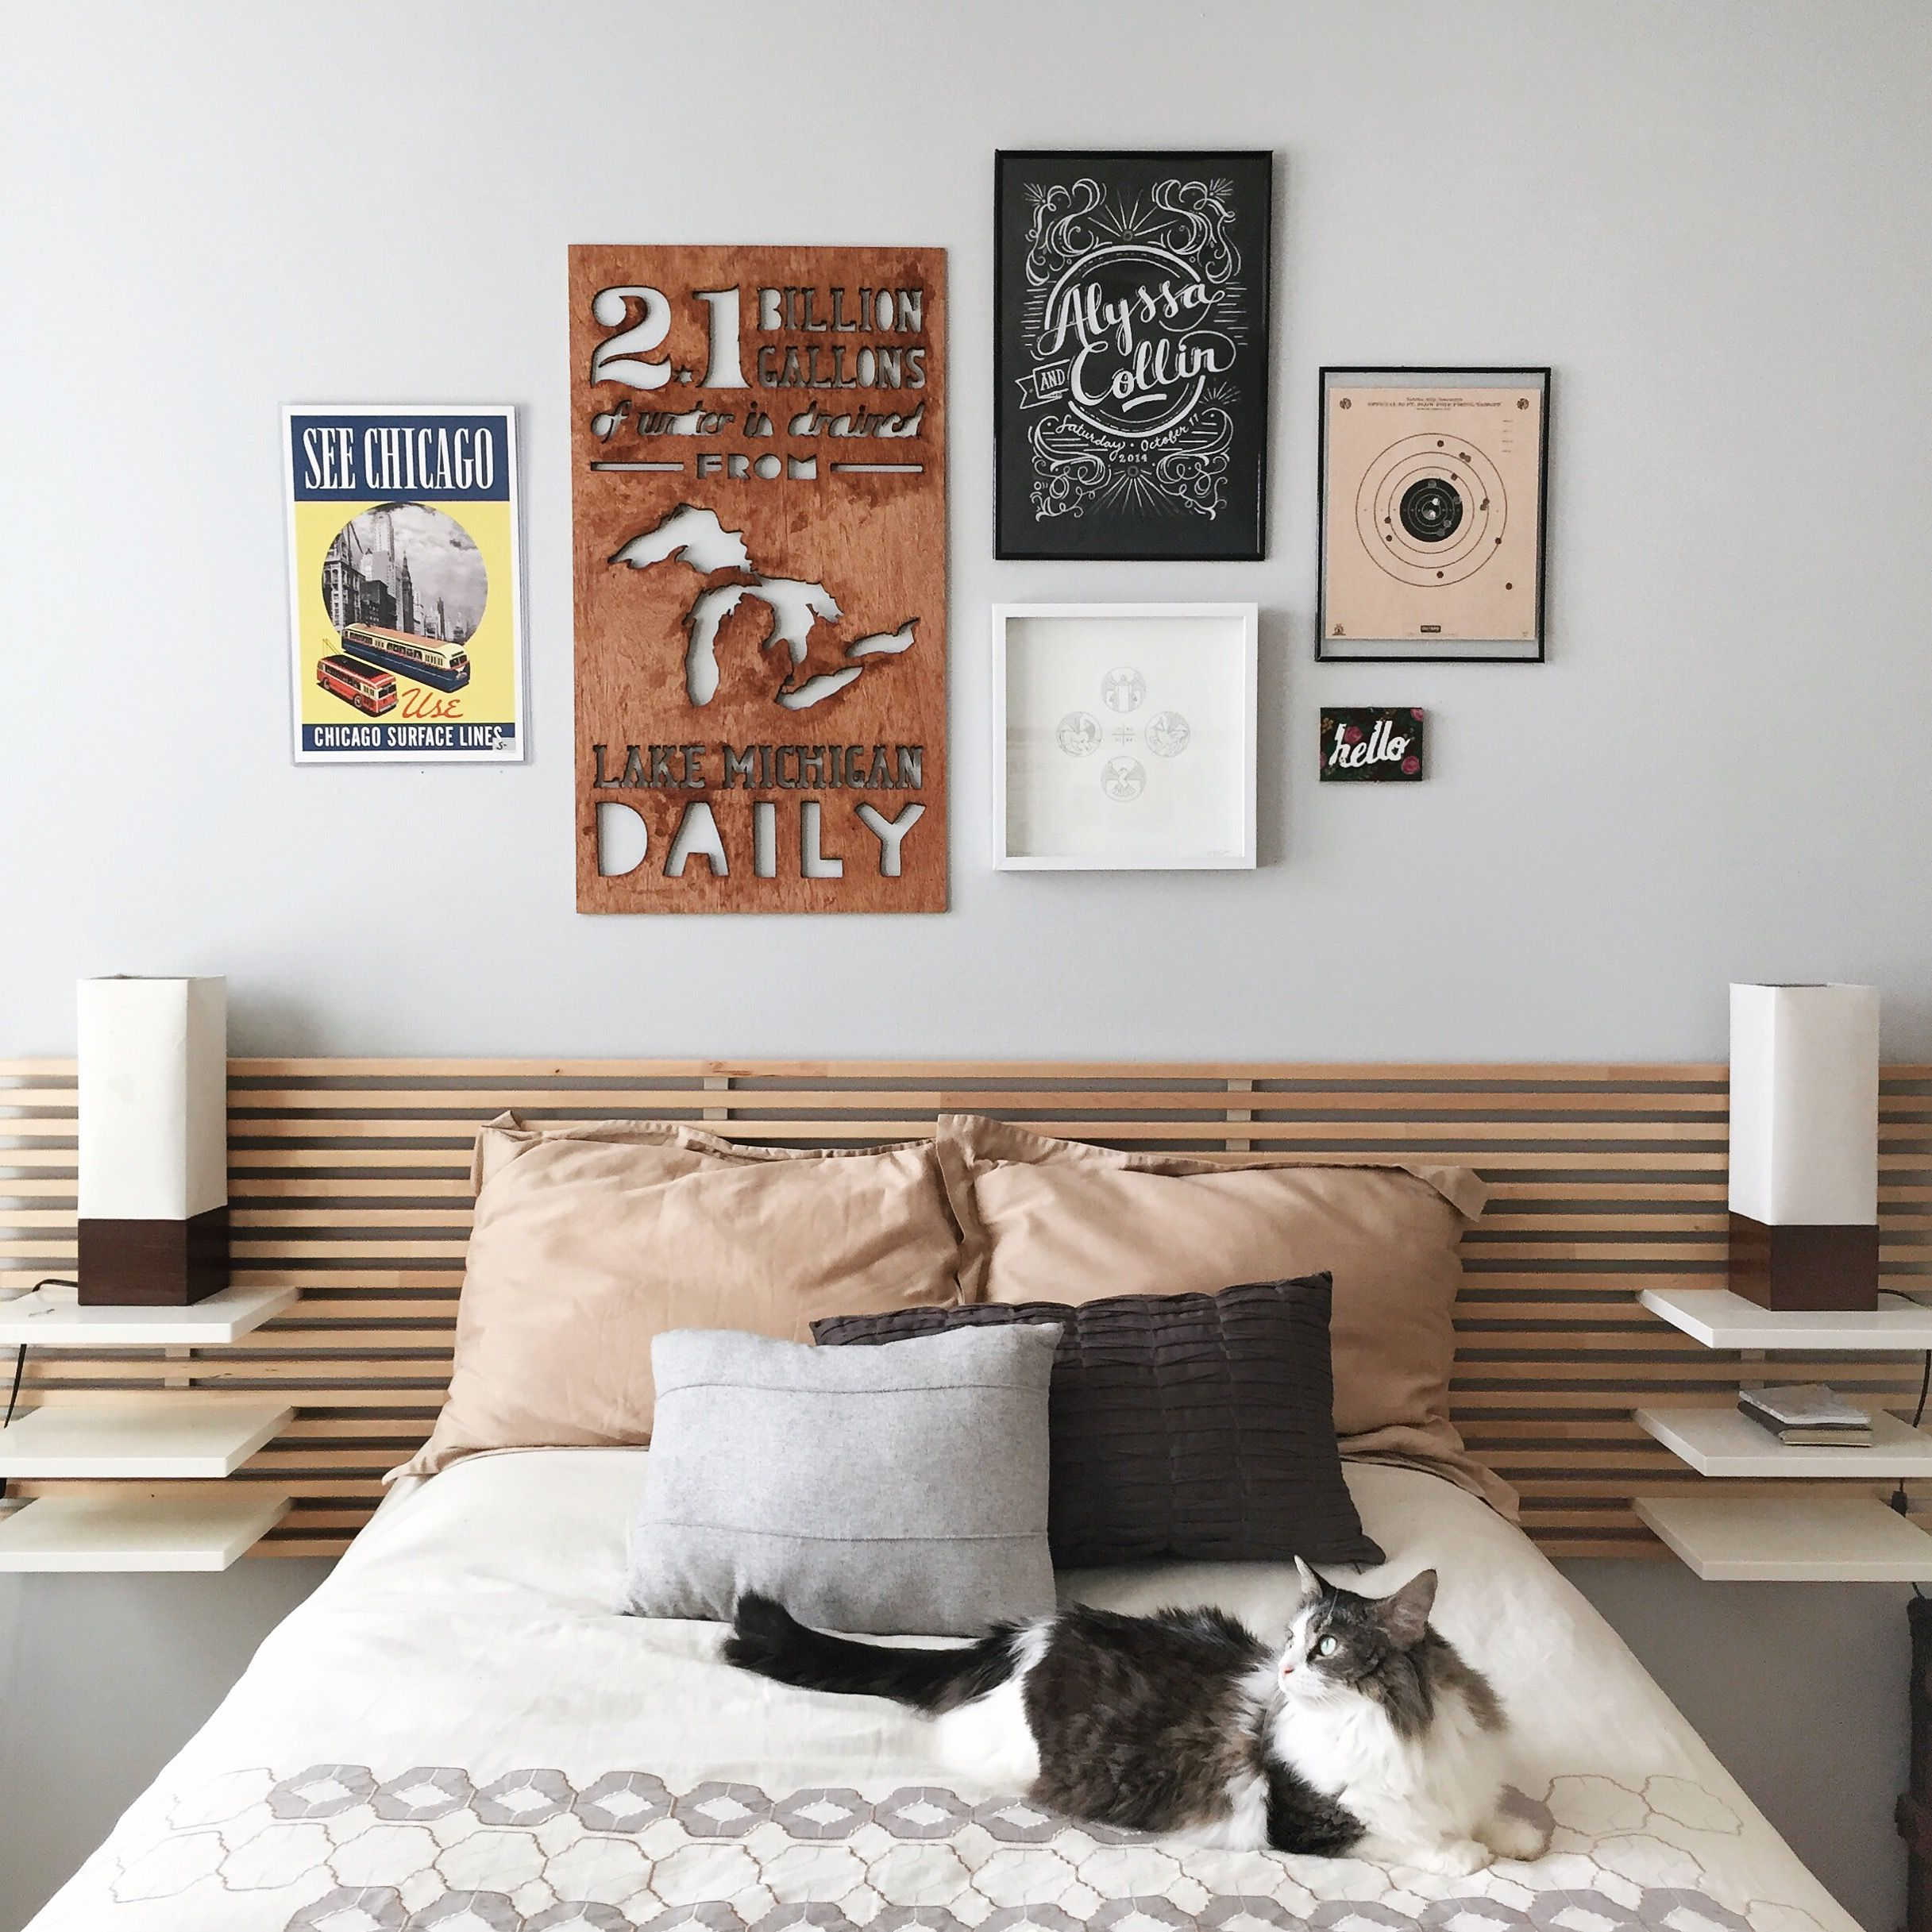 ikea mandal bed frame modeled by shiloh bed pinterest schlafzimmer bett und wohnraum. Black Bedroom Furniture Sets. Home Design Ideas